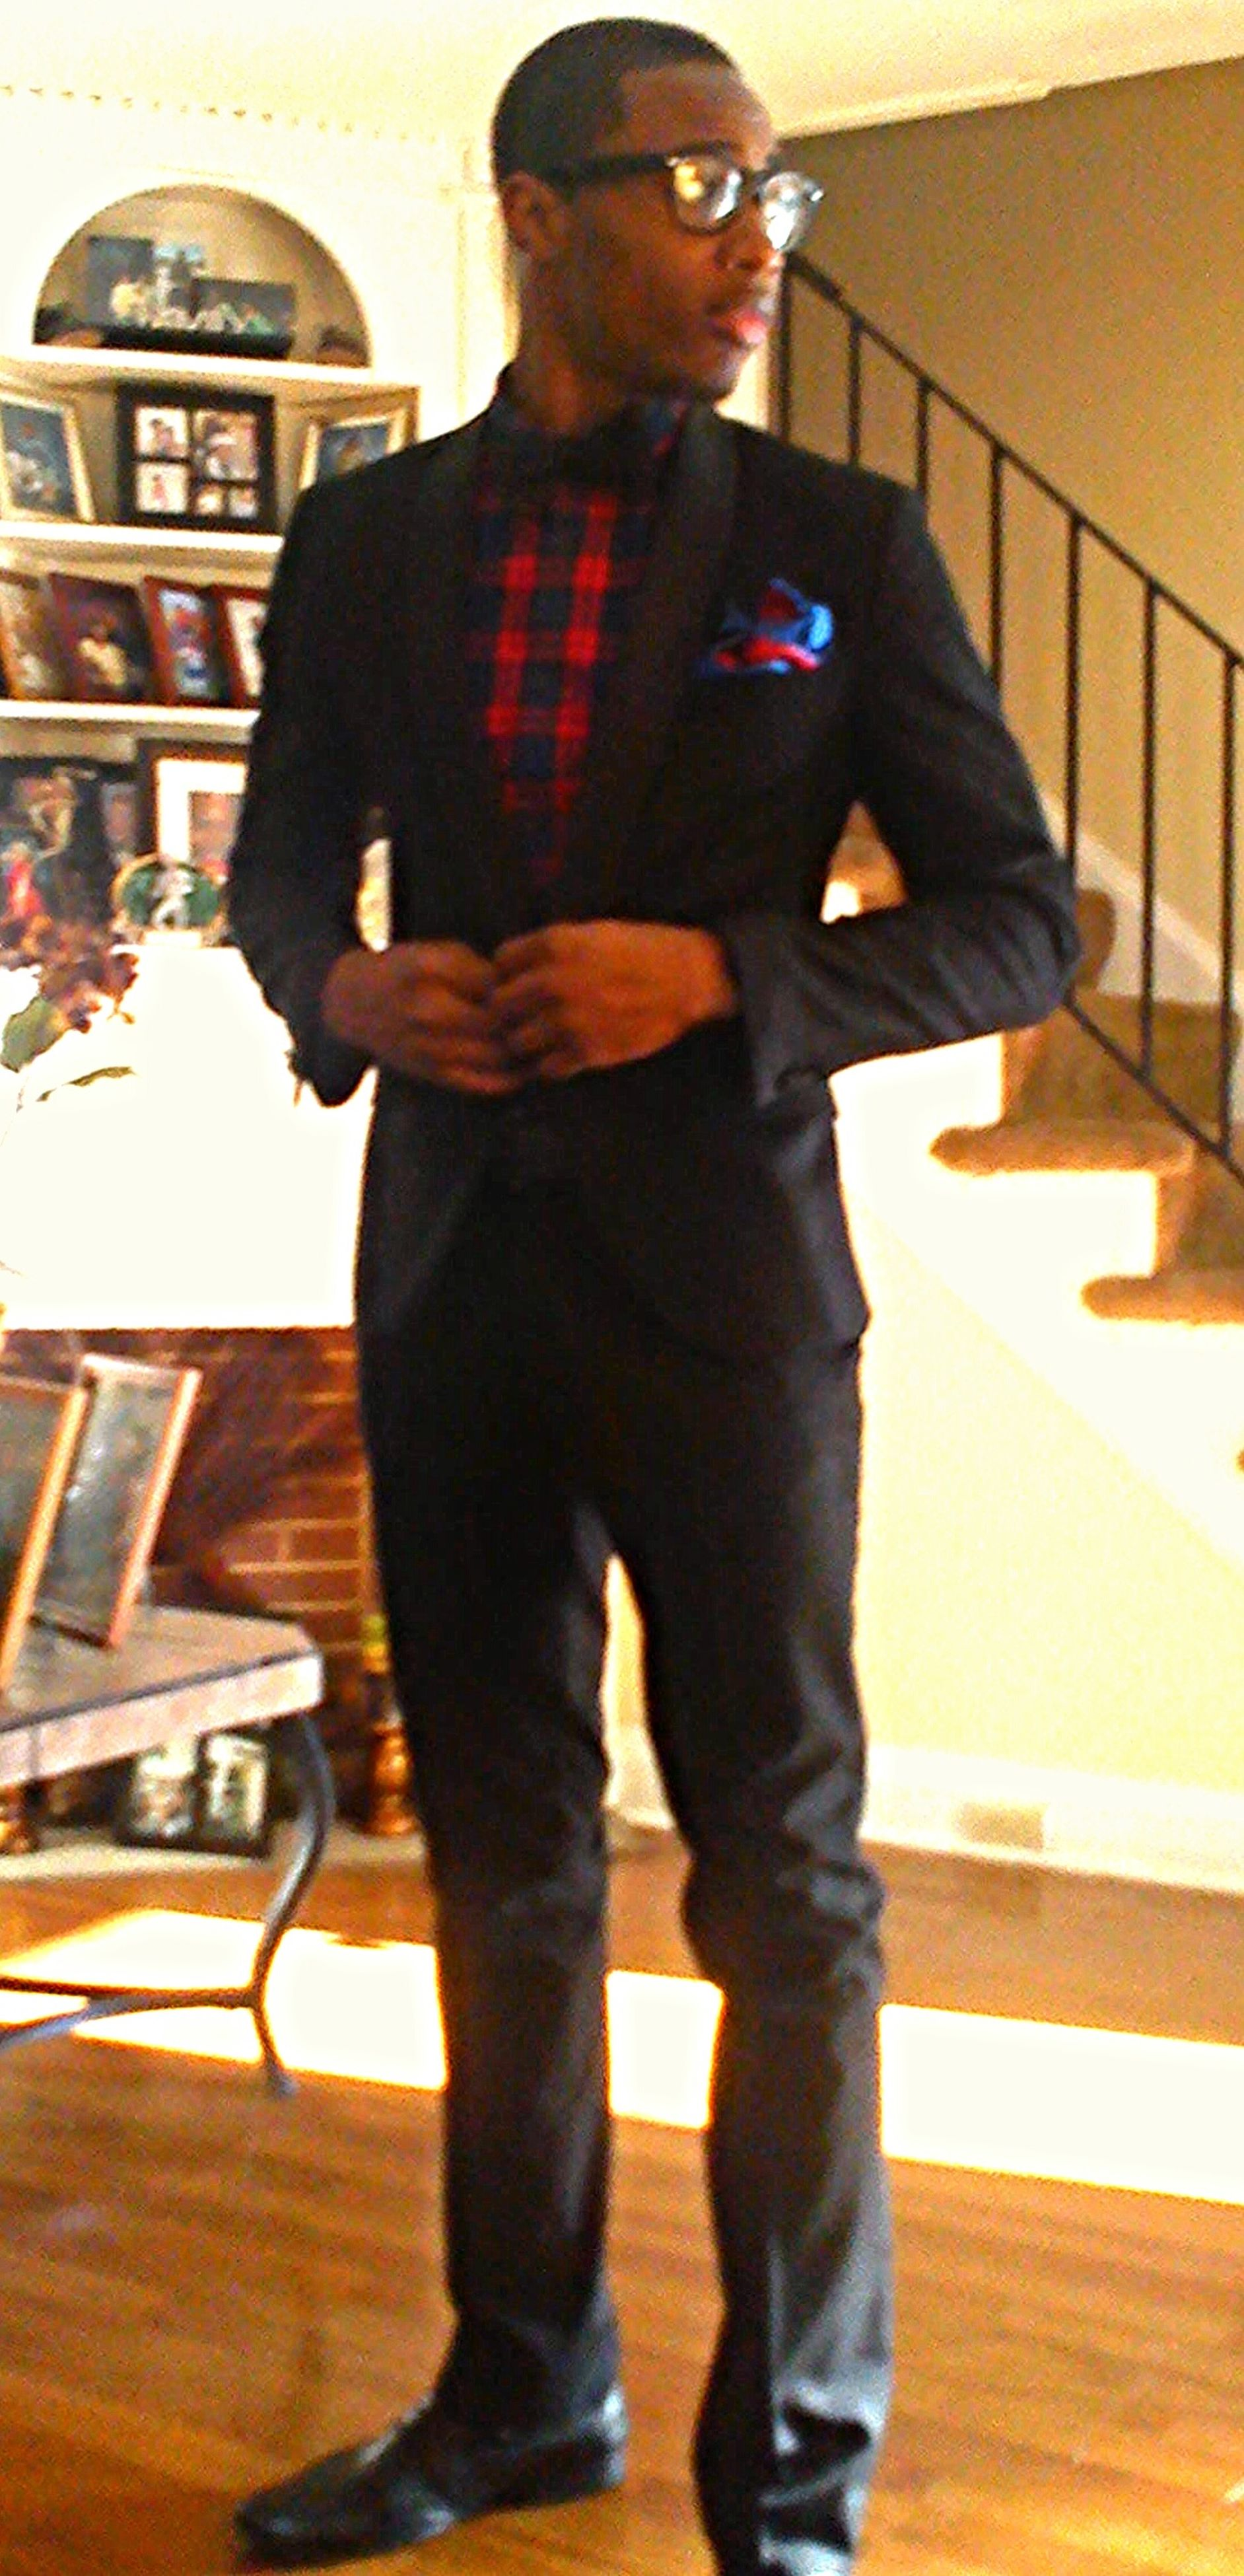 lifestyles, casual clothing, standing, indoors, three quarter length, front view, full length, leisure activity, black color, young adult, portrait, jacket, looking at camera, night, young men, fashion, men, well-dressed